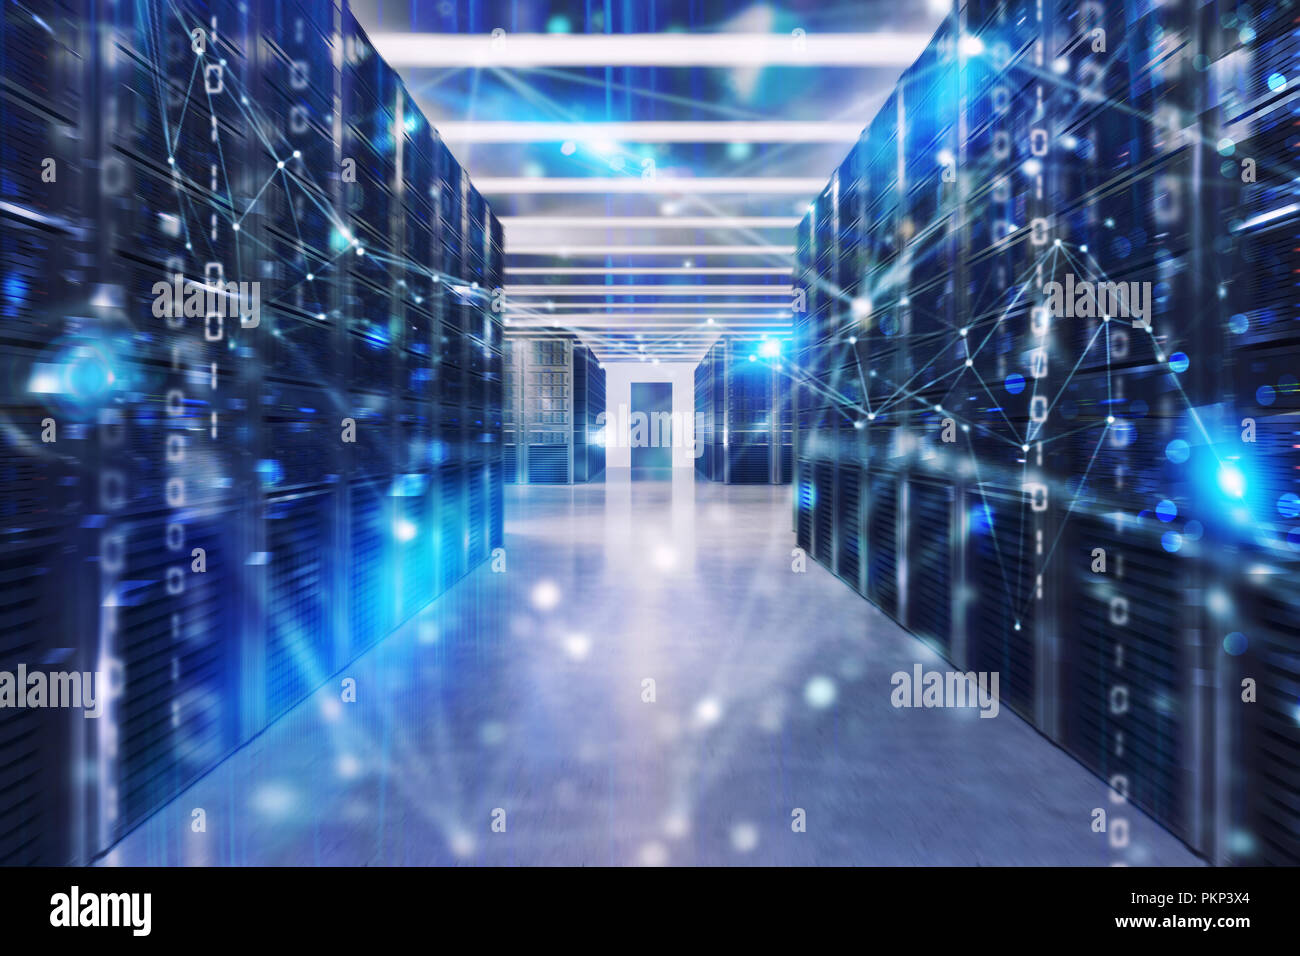 Server farm with network connection effects and codes - Stock Image